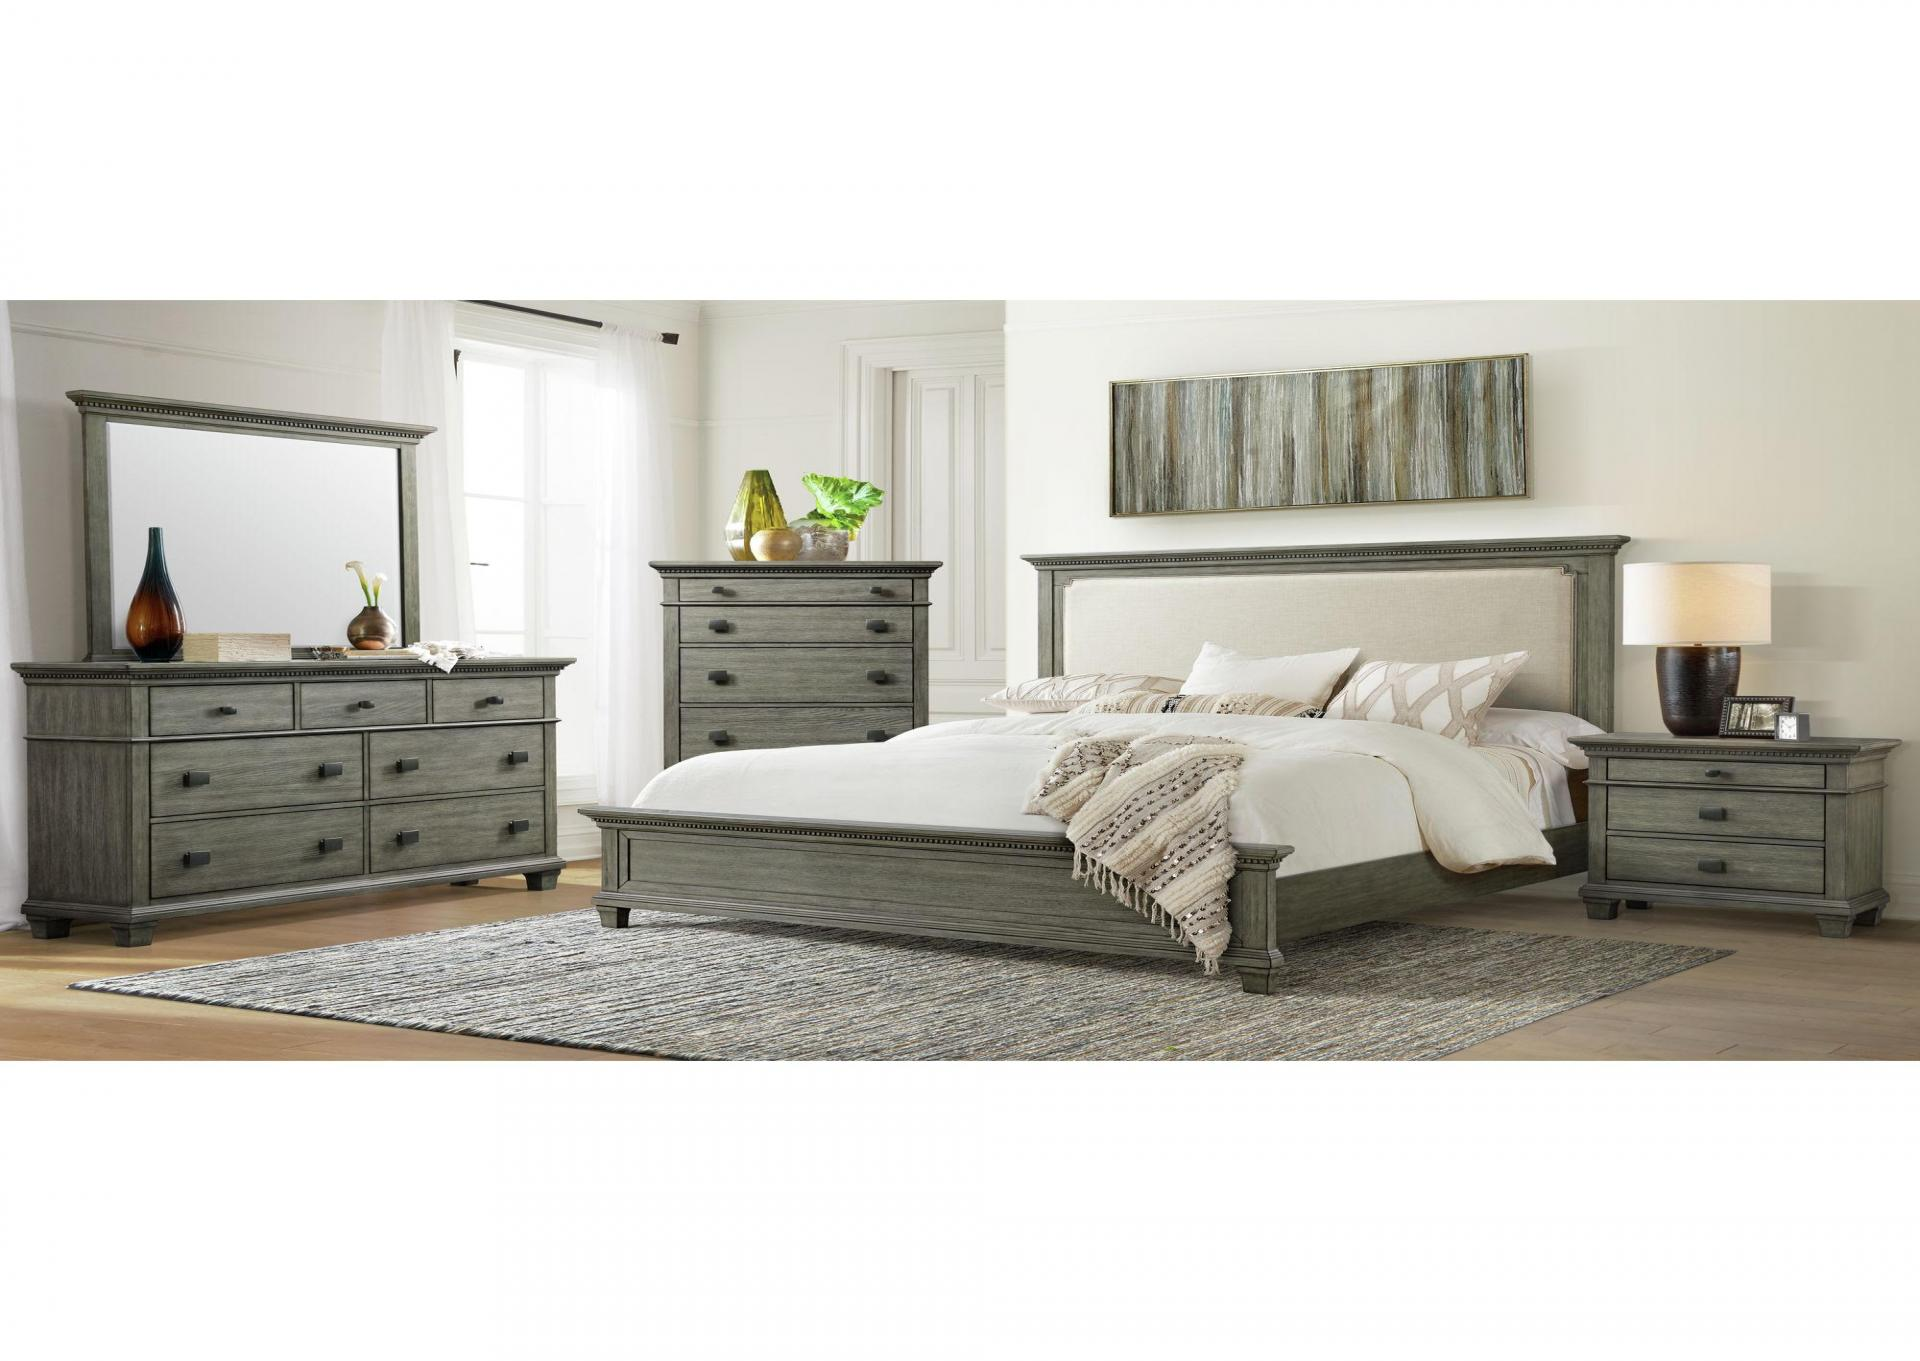 CW300 Queen Bed, Dresser, Mirror, Chest And Night Stand,Harlem In-Store